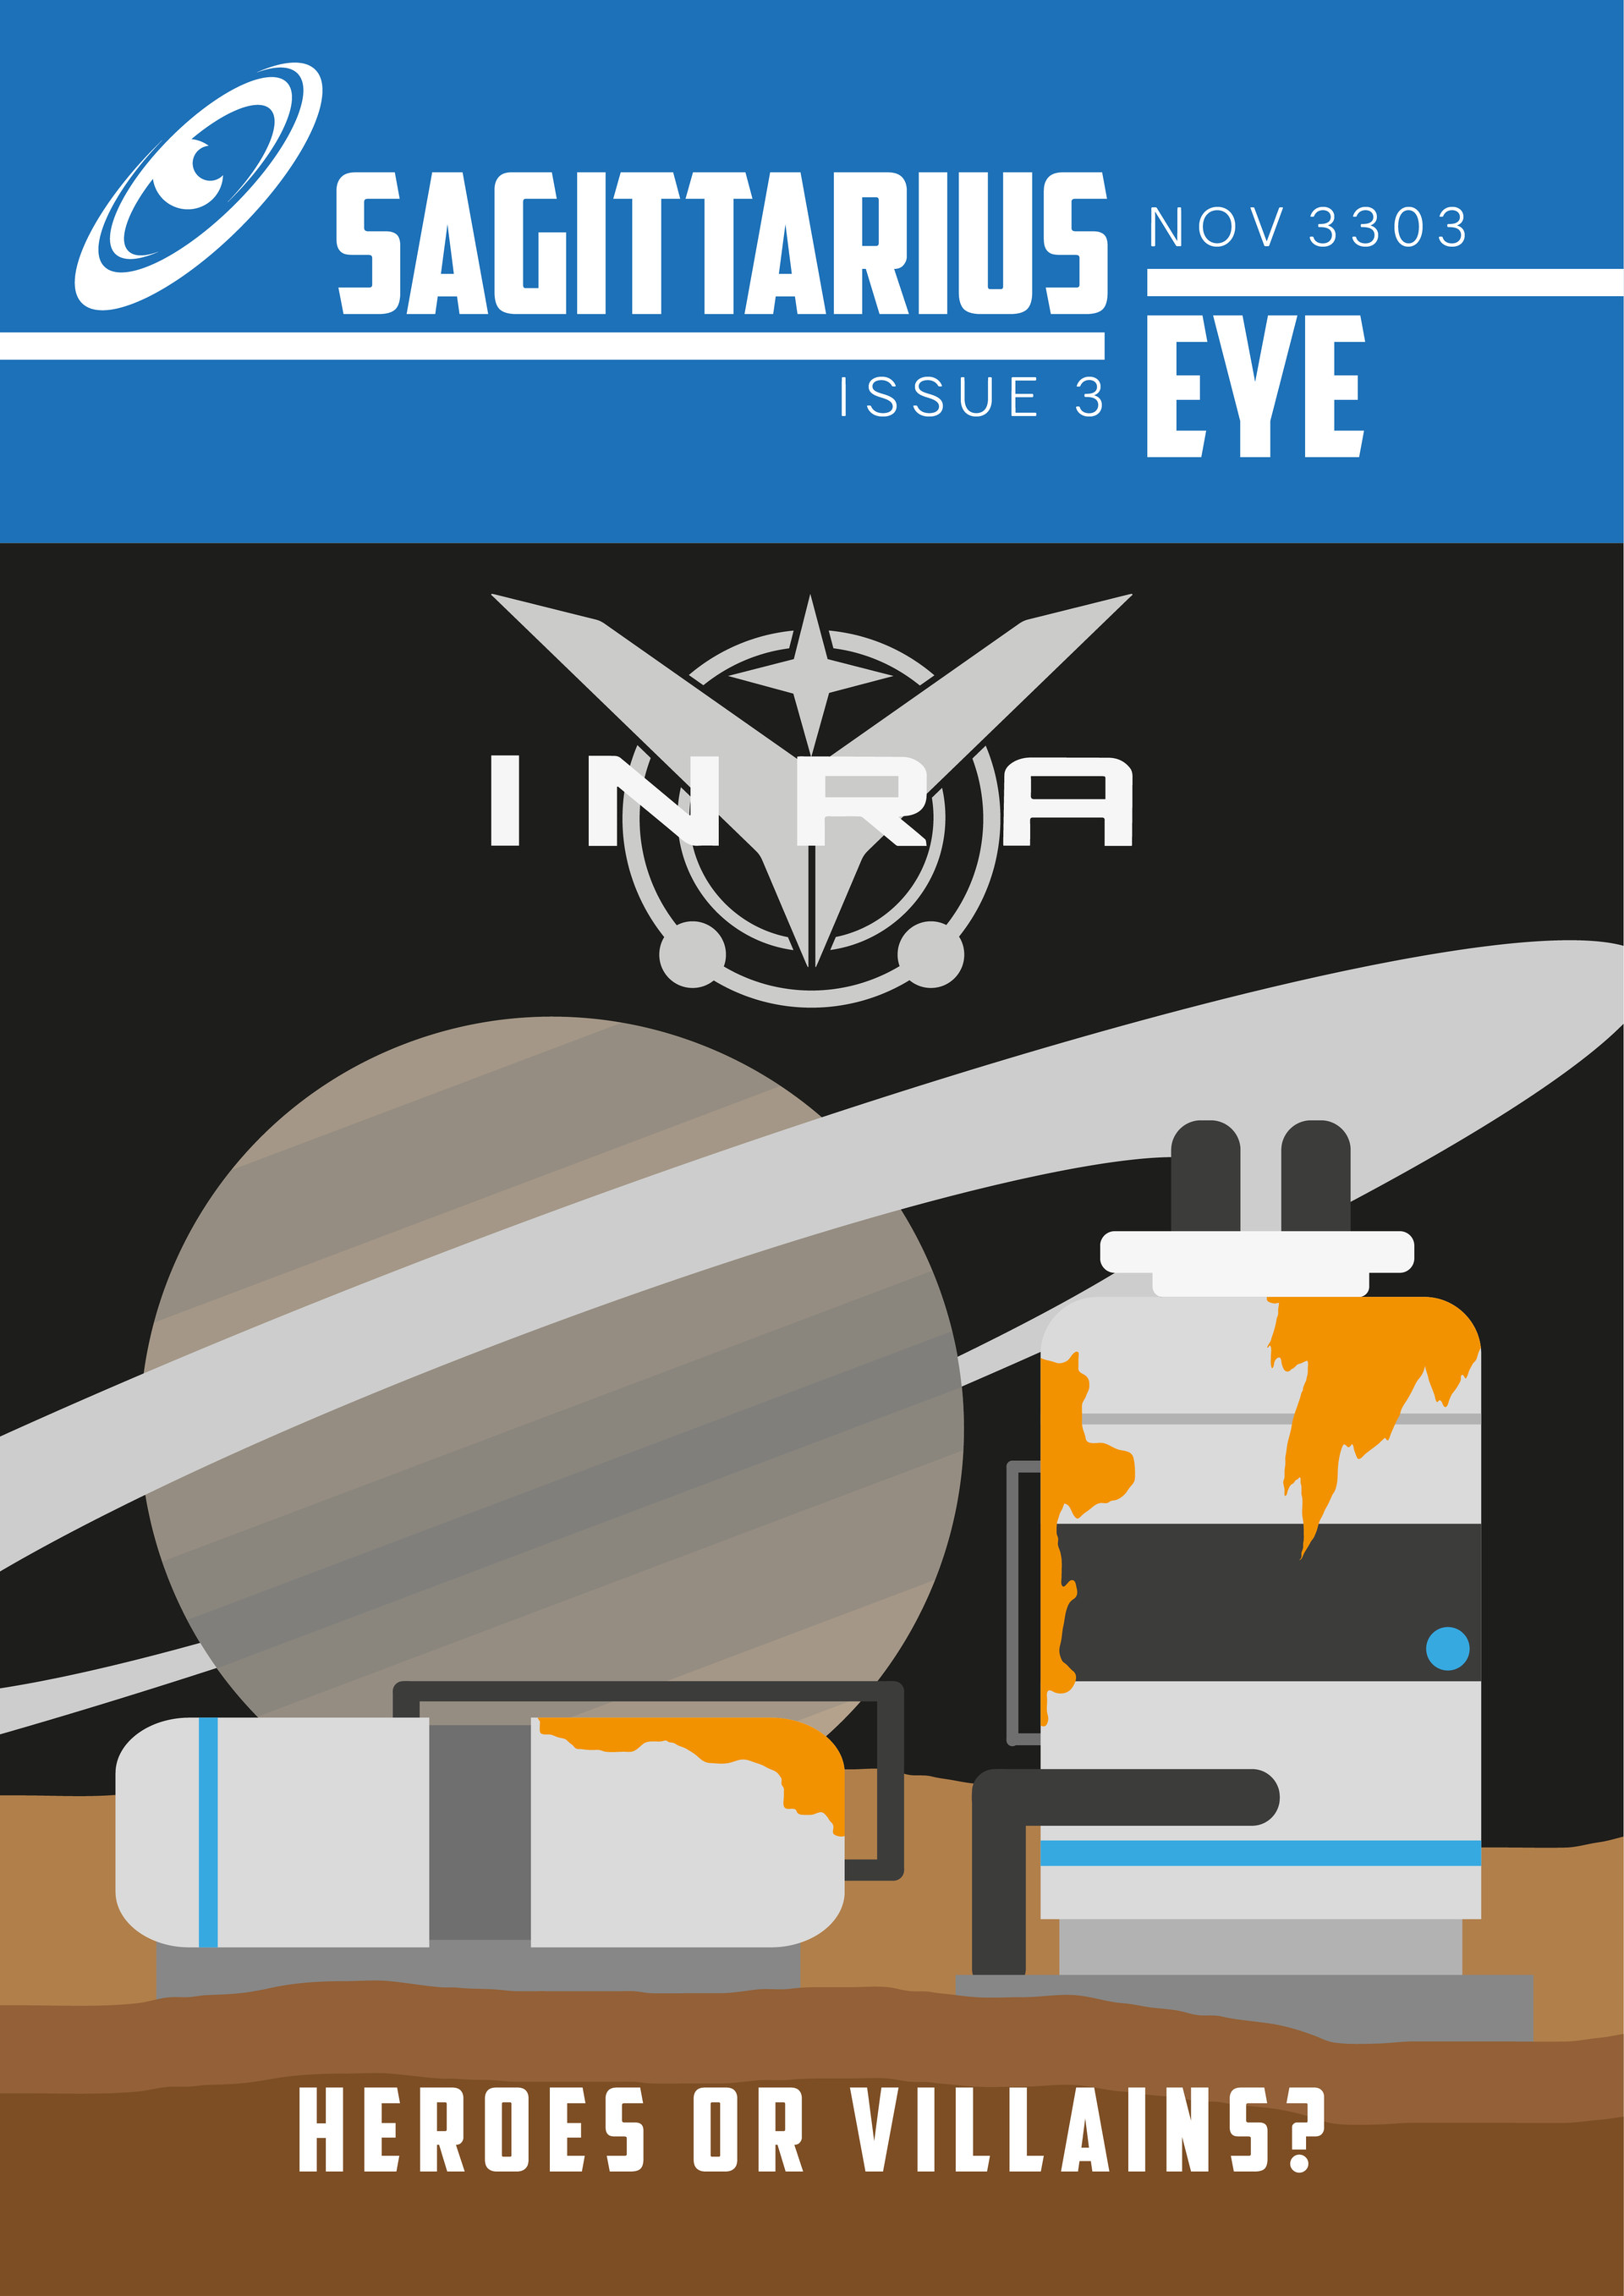 Mathew maddison sagittarius eye issue covers 02